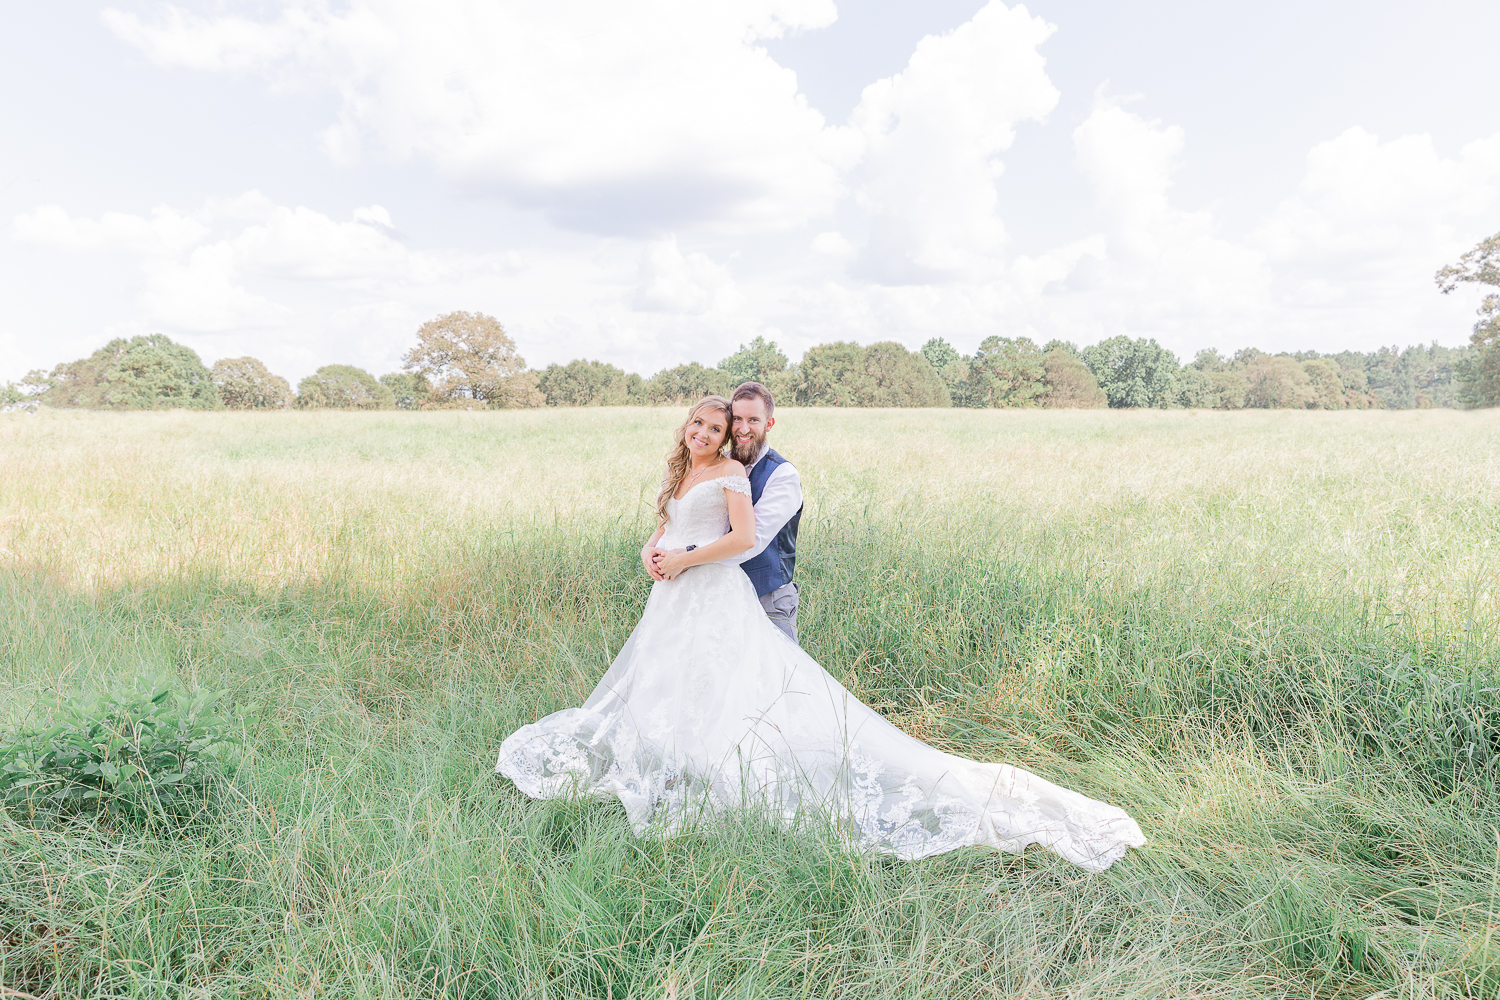 Mississippi Wedding Photographer | State Line, Mississippi | Grassy Field Bride and Groom Portraits | Wedding Dress | Bliss Bridal | I Do Bridal | Couple's Portraits